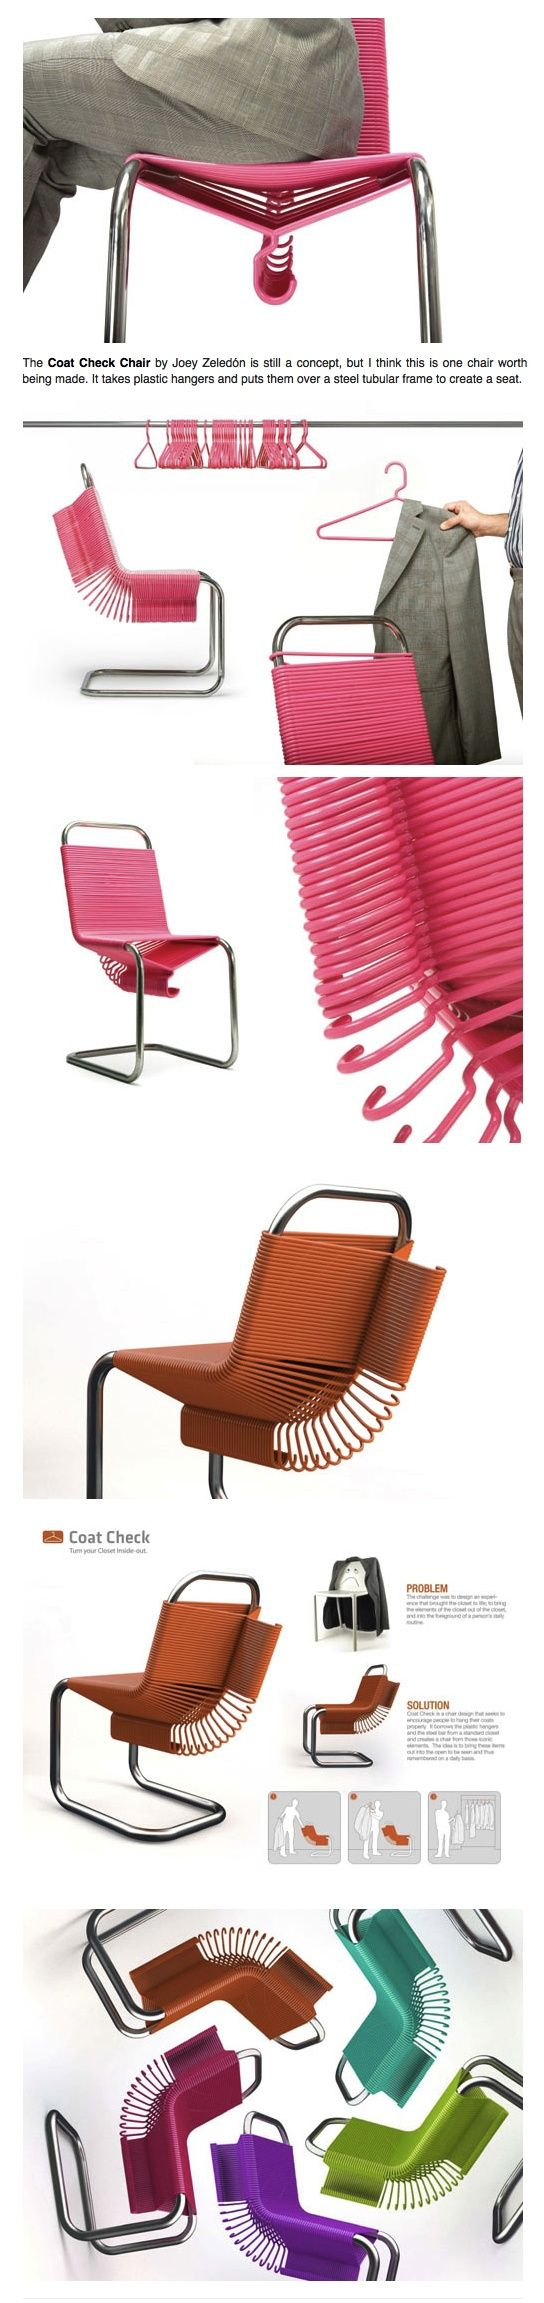 Coat Check chair / A chair uses plastic hangers set atop a steel frame. Interesting!  /designer: Joey Zeledón